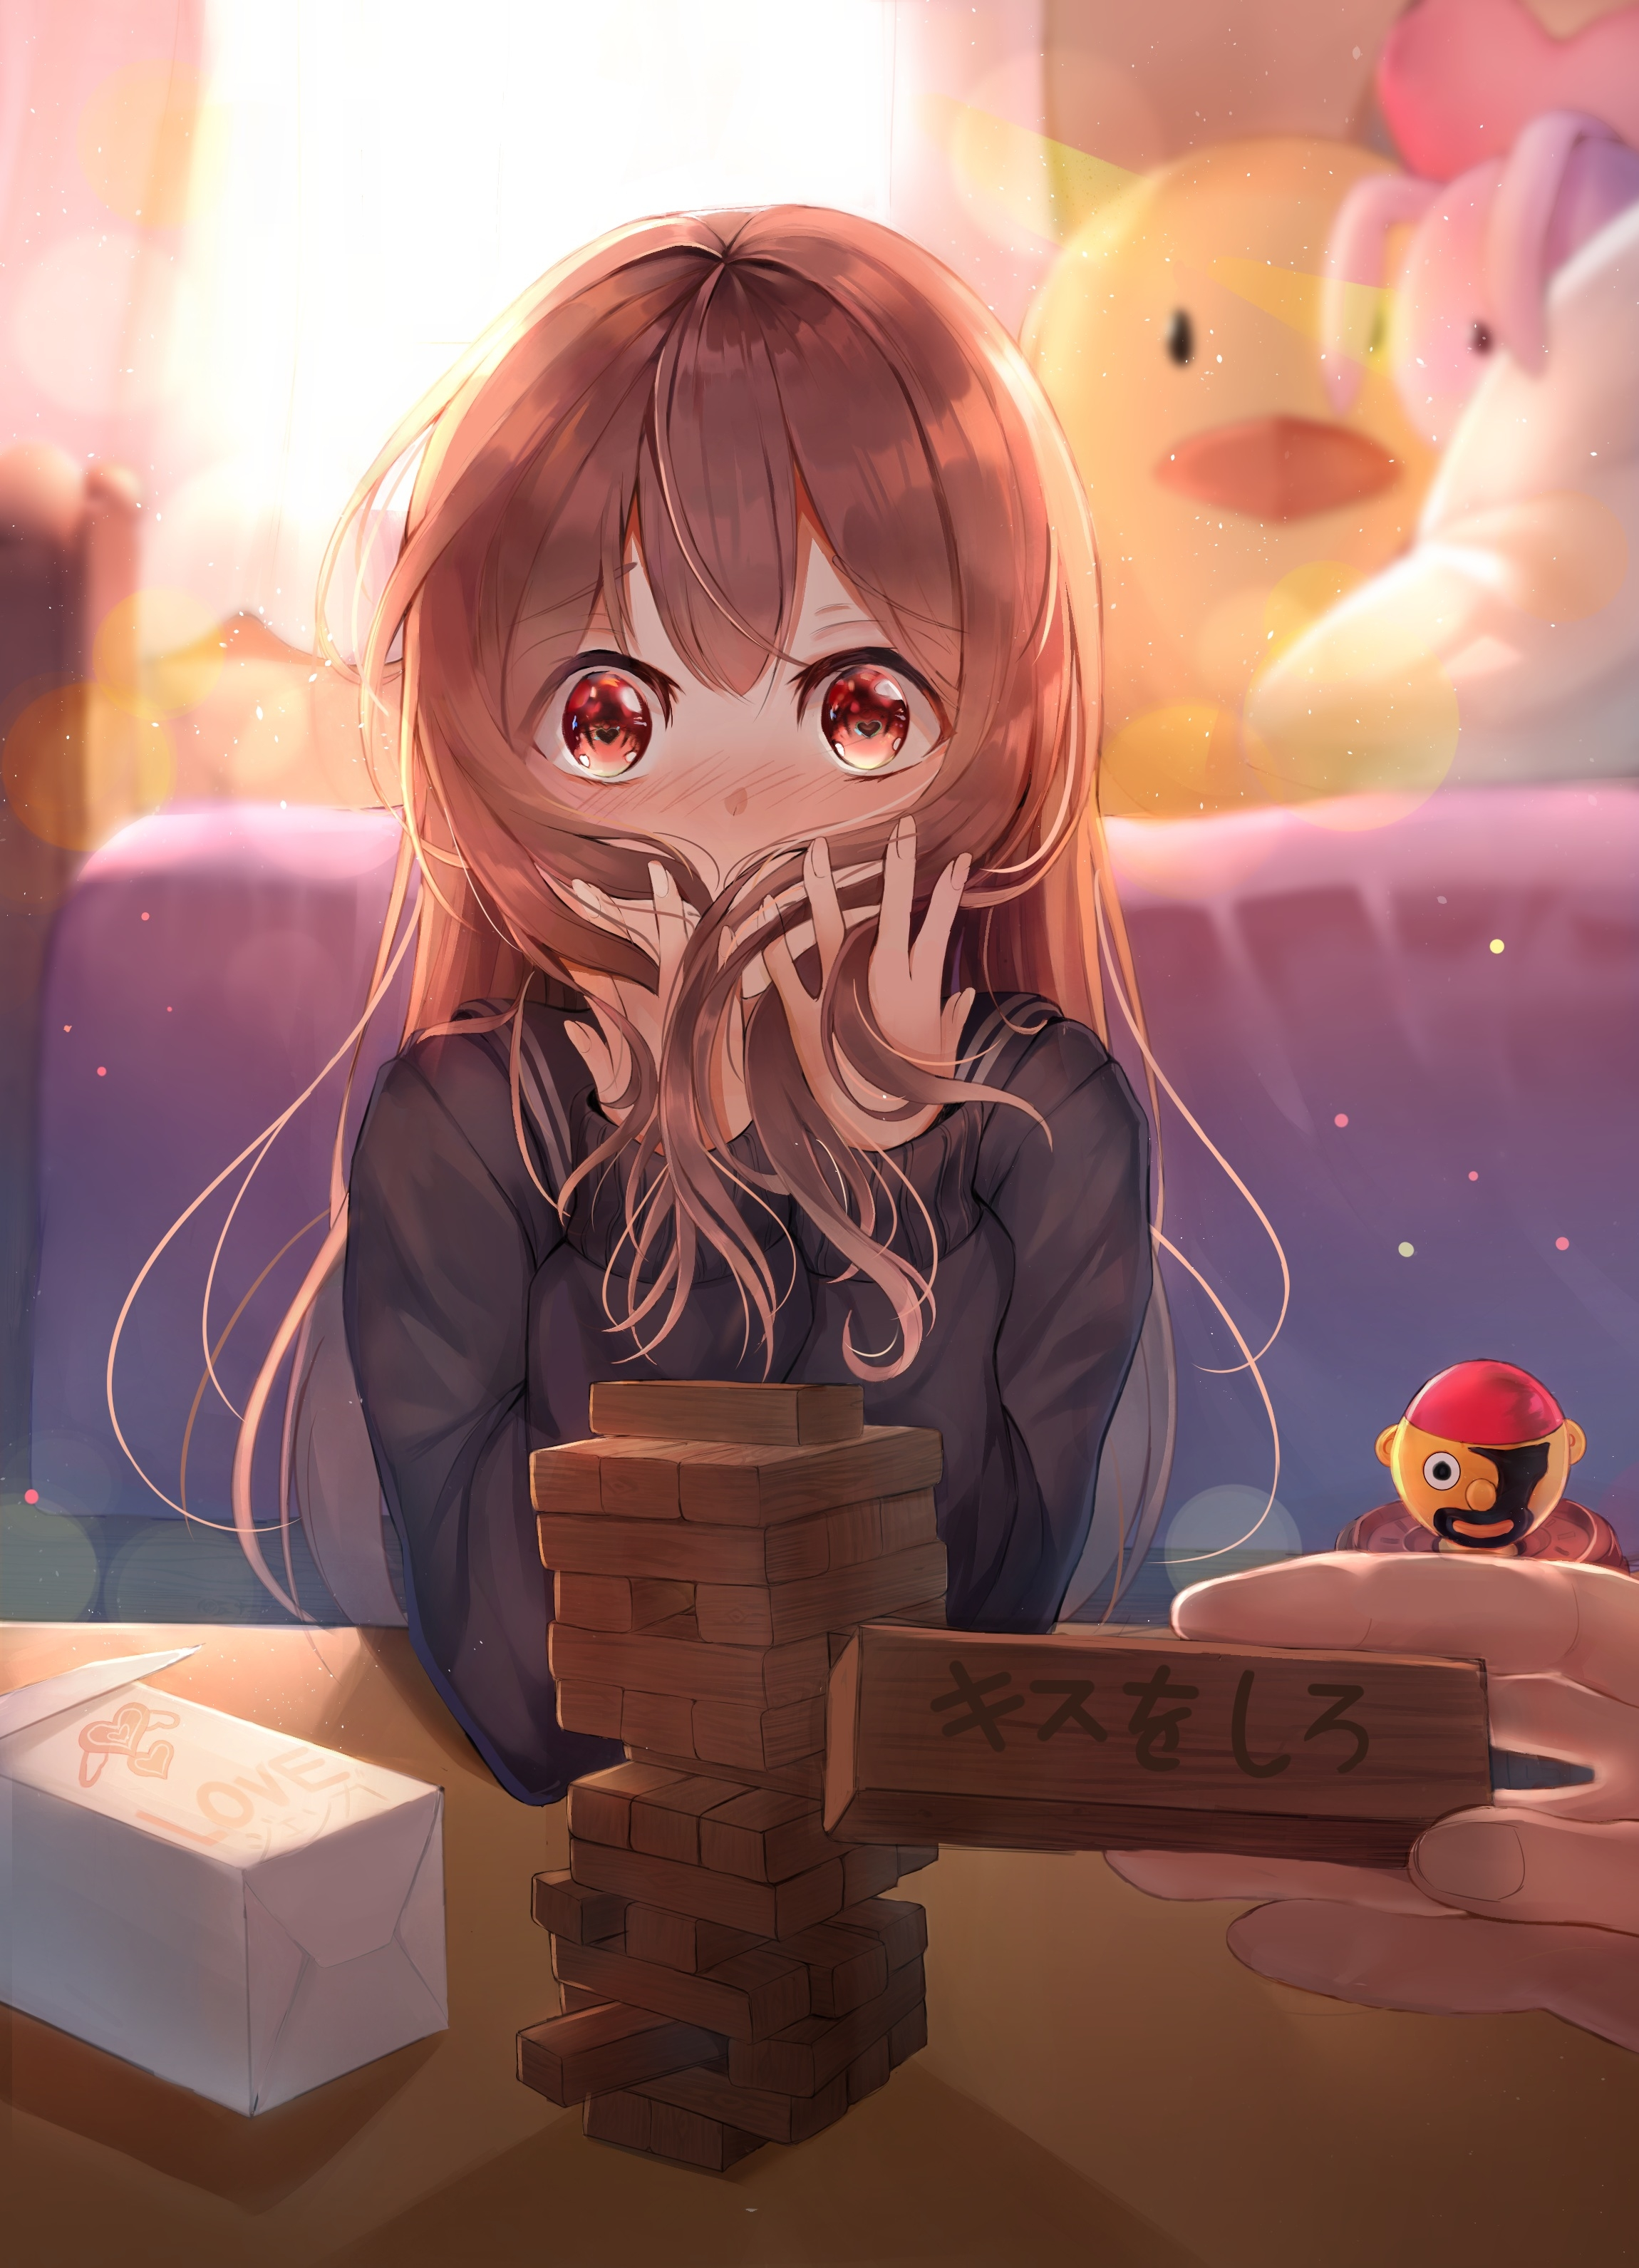 Cute Anime Girl With Long Hair Posted By Samantha Simpson